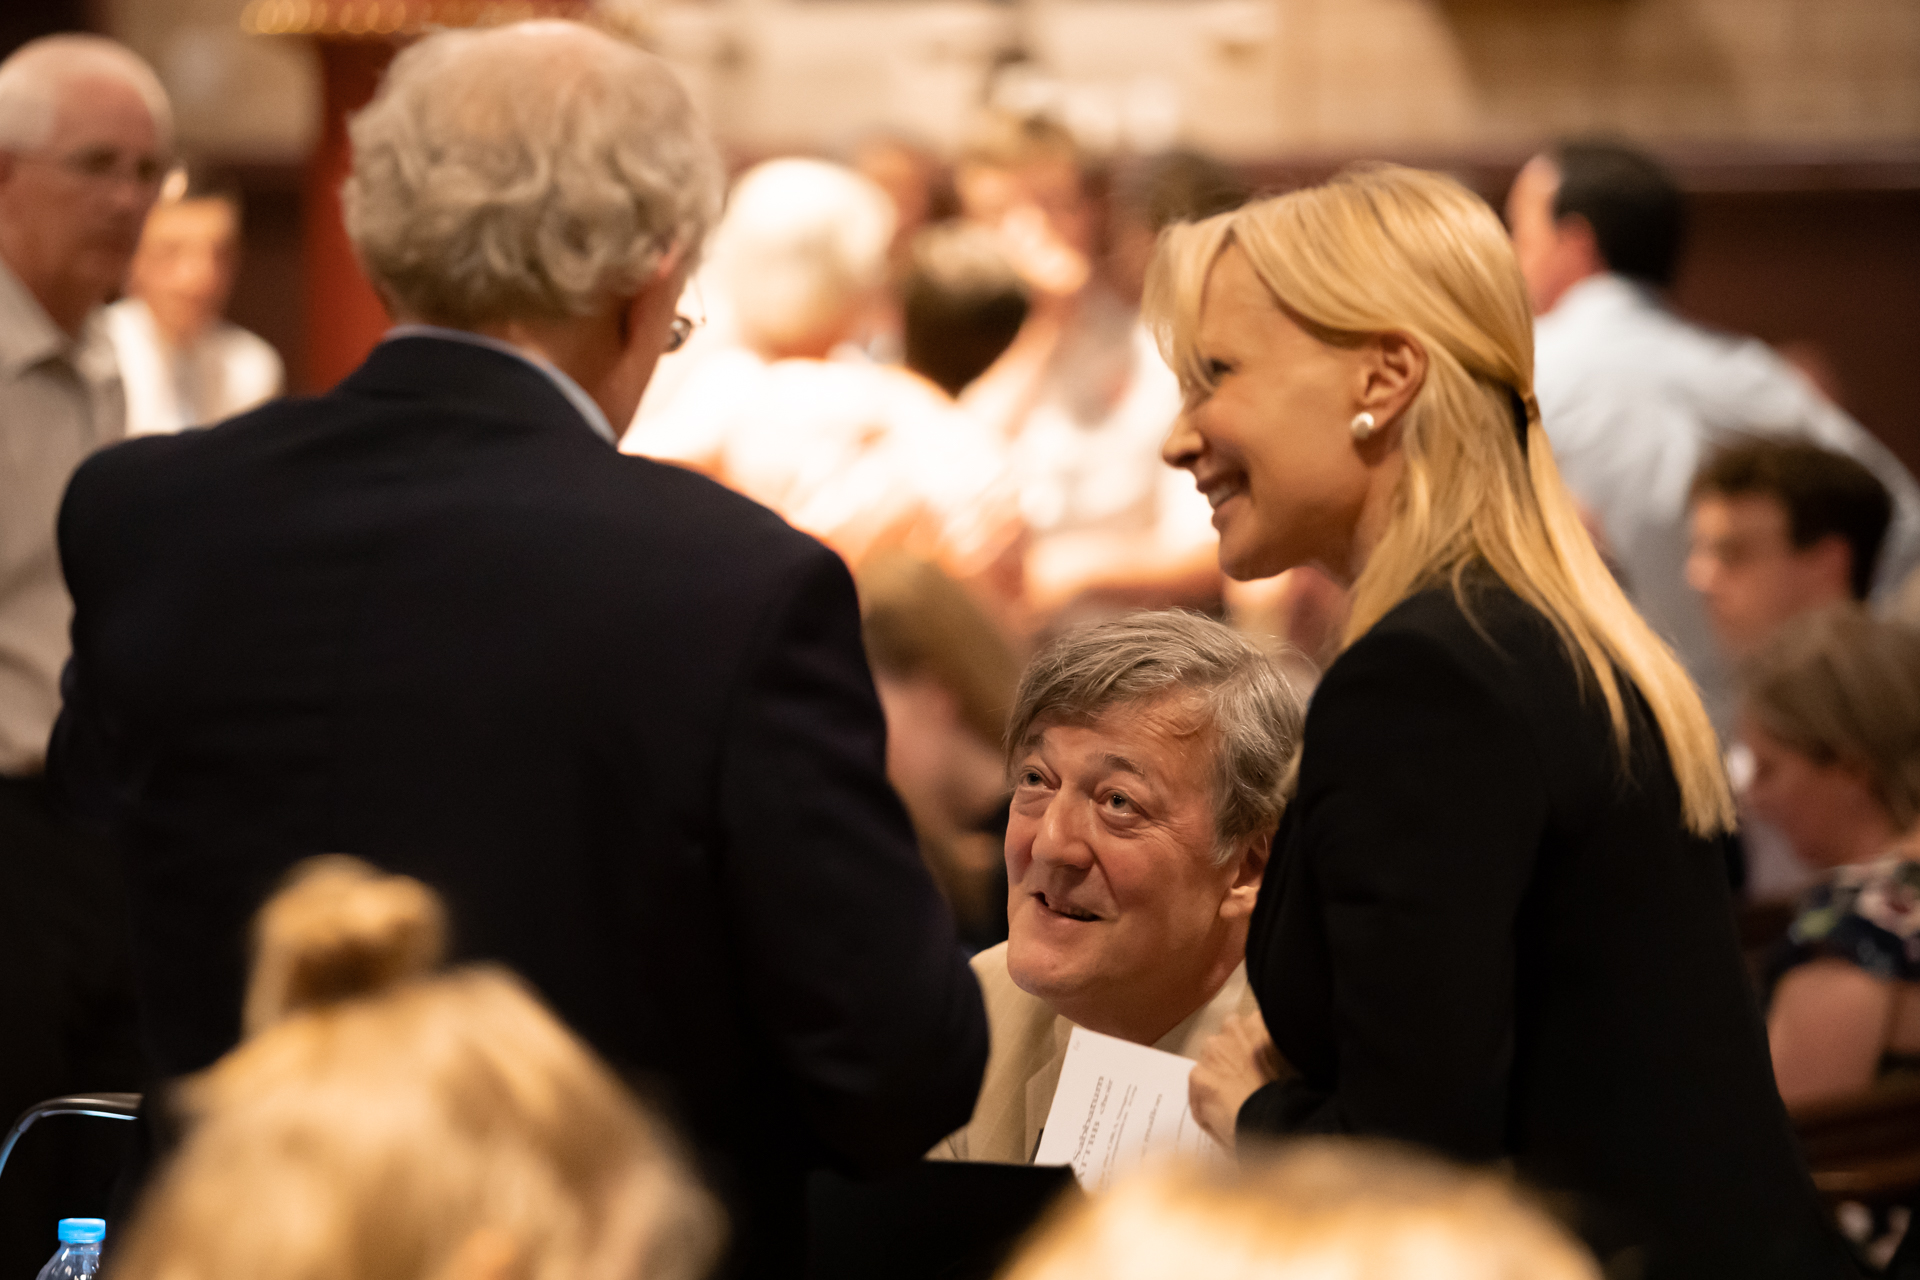 Final Adjudication - Joining ORA Singers at the Competition Final Concert was our esteemed adjudication panel. Chaired by Stephen Fry, we were also honoured to be accompanied by John Rutter CBE, Katie Tearle MBE and Susanna Eastburn MBE. The panel chose one overall winner from each competition, which was announced alongside the Audience Prize winner for each competition.The final winners were announced as:Áine Mallon- winner of the Open Competition and receiver of the Audience Prize.Emily Pedersen- winner of the Youth Competition & Patrick Lappin- receiver of the Audience Prize.